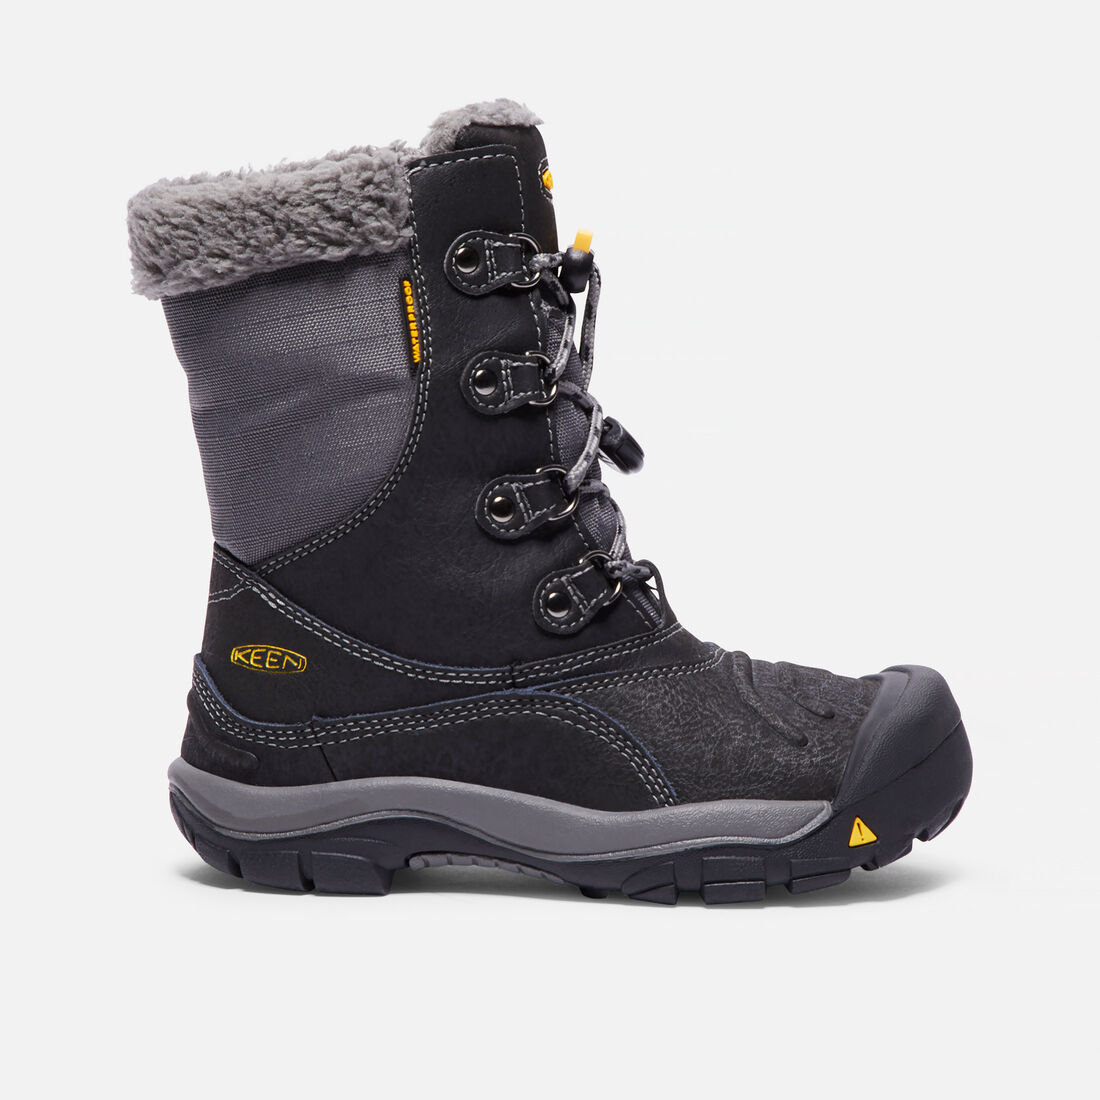 Big Kids' Basin Waterproof Boot in Black/Gargoyle - large view.